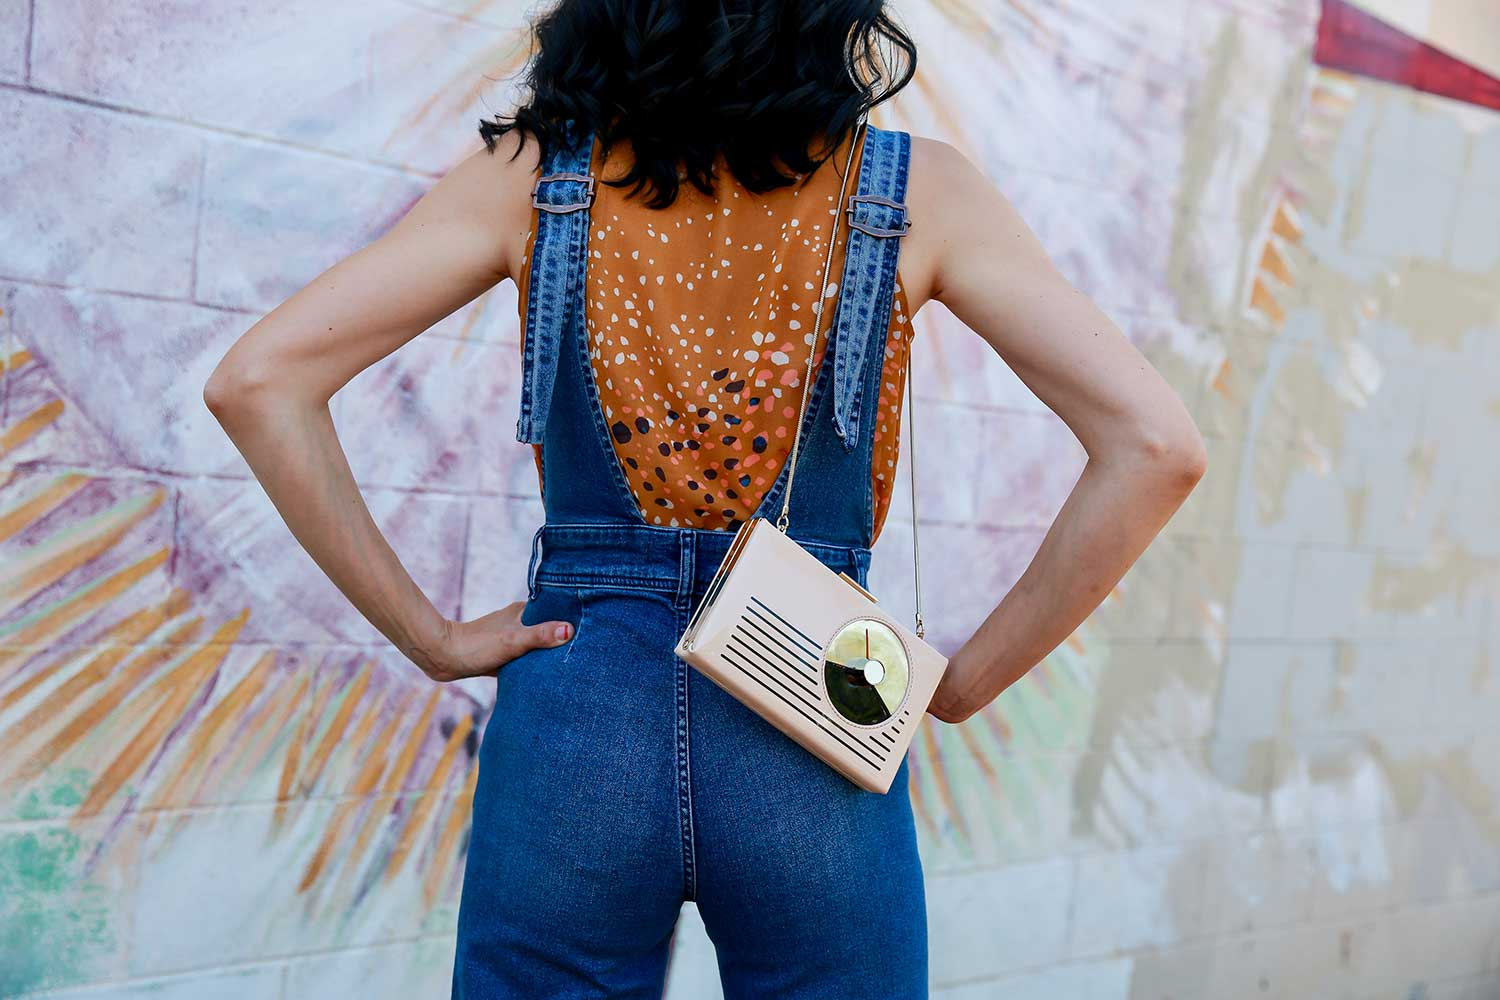 Jenna-Pilant-San-Diego-Style-Blogger-Lucky-Little-Mustardseed-Cabi-Clothing-How-To-Wear-Overalls-For-Fall-7